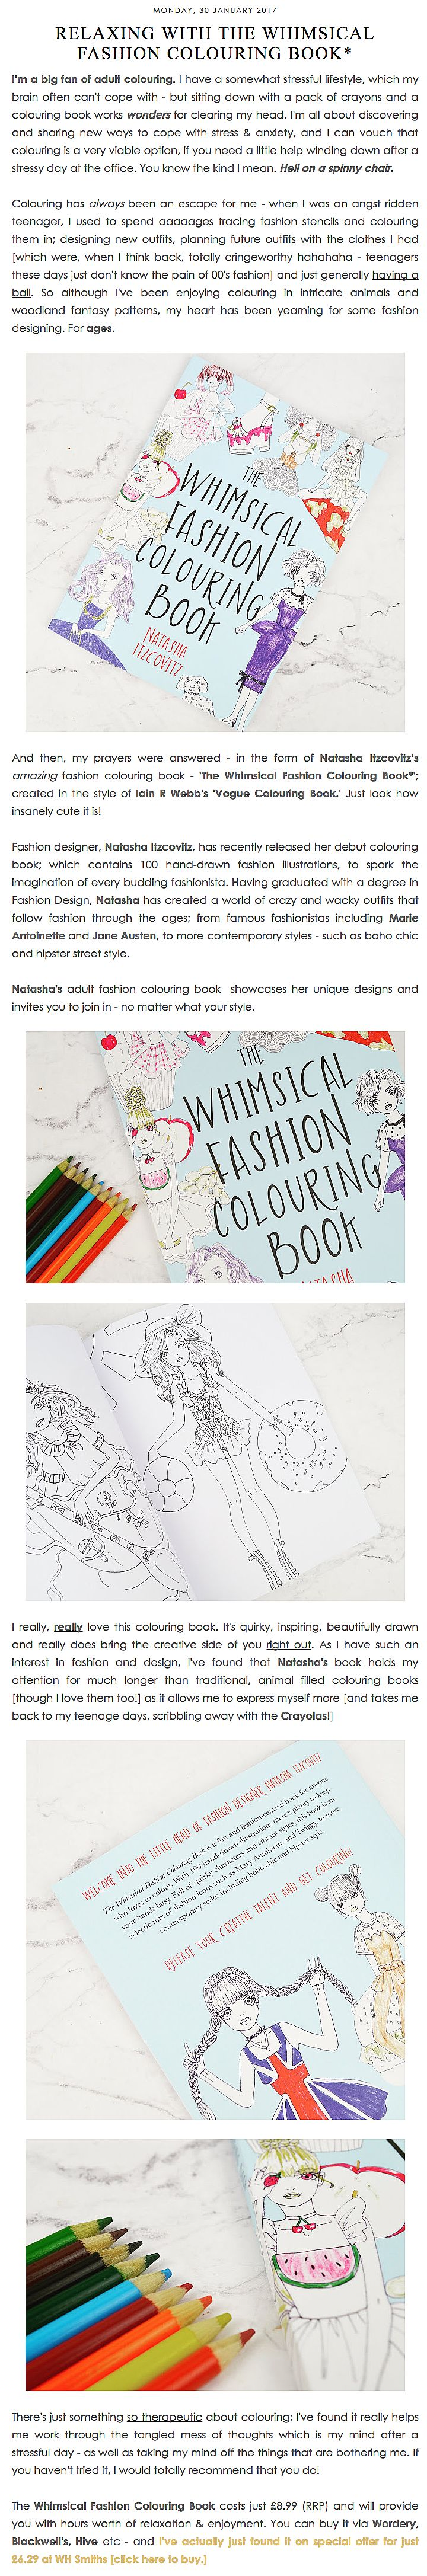 Colourtation anti stress colouring book for adults volume 1 - Anti Stress Colouring Books Dymocks Co Coloring Book Adults Fashion Sixtyplusurfers